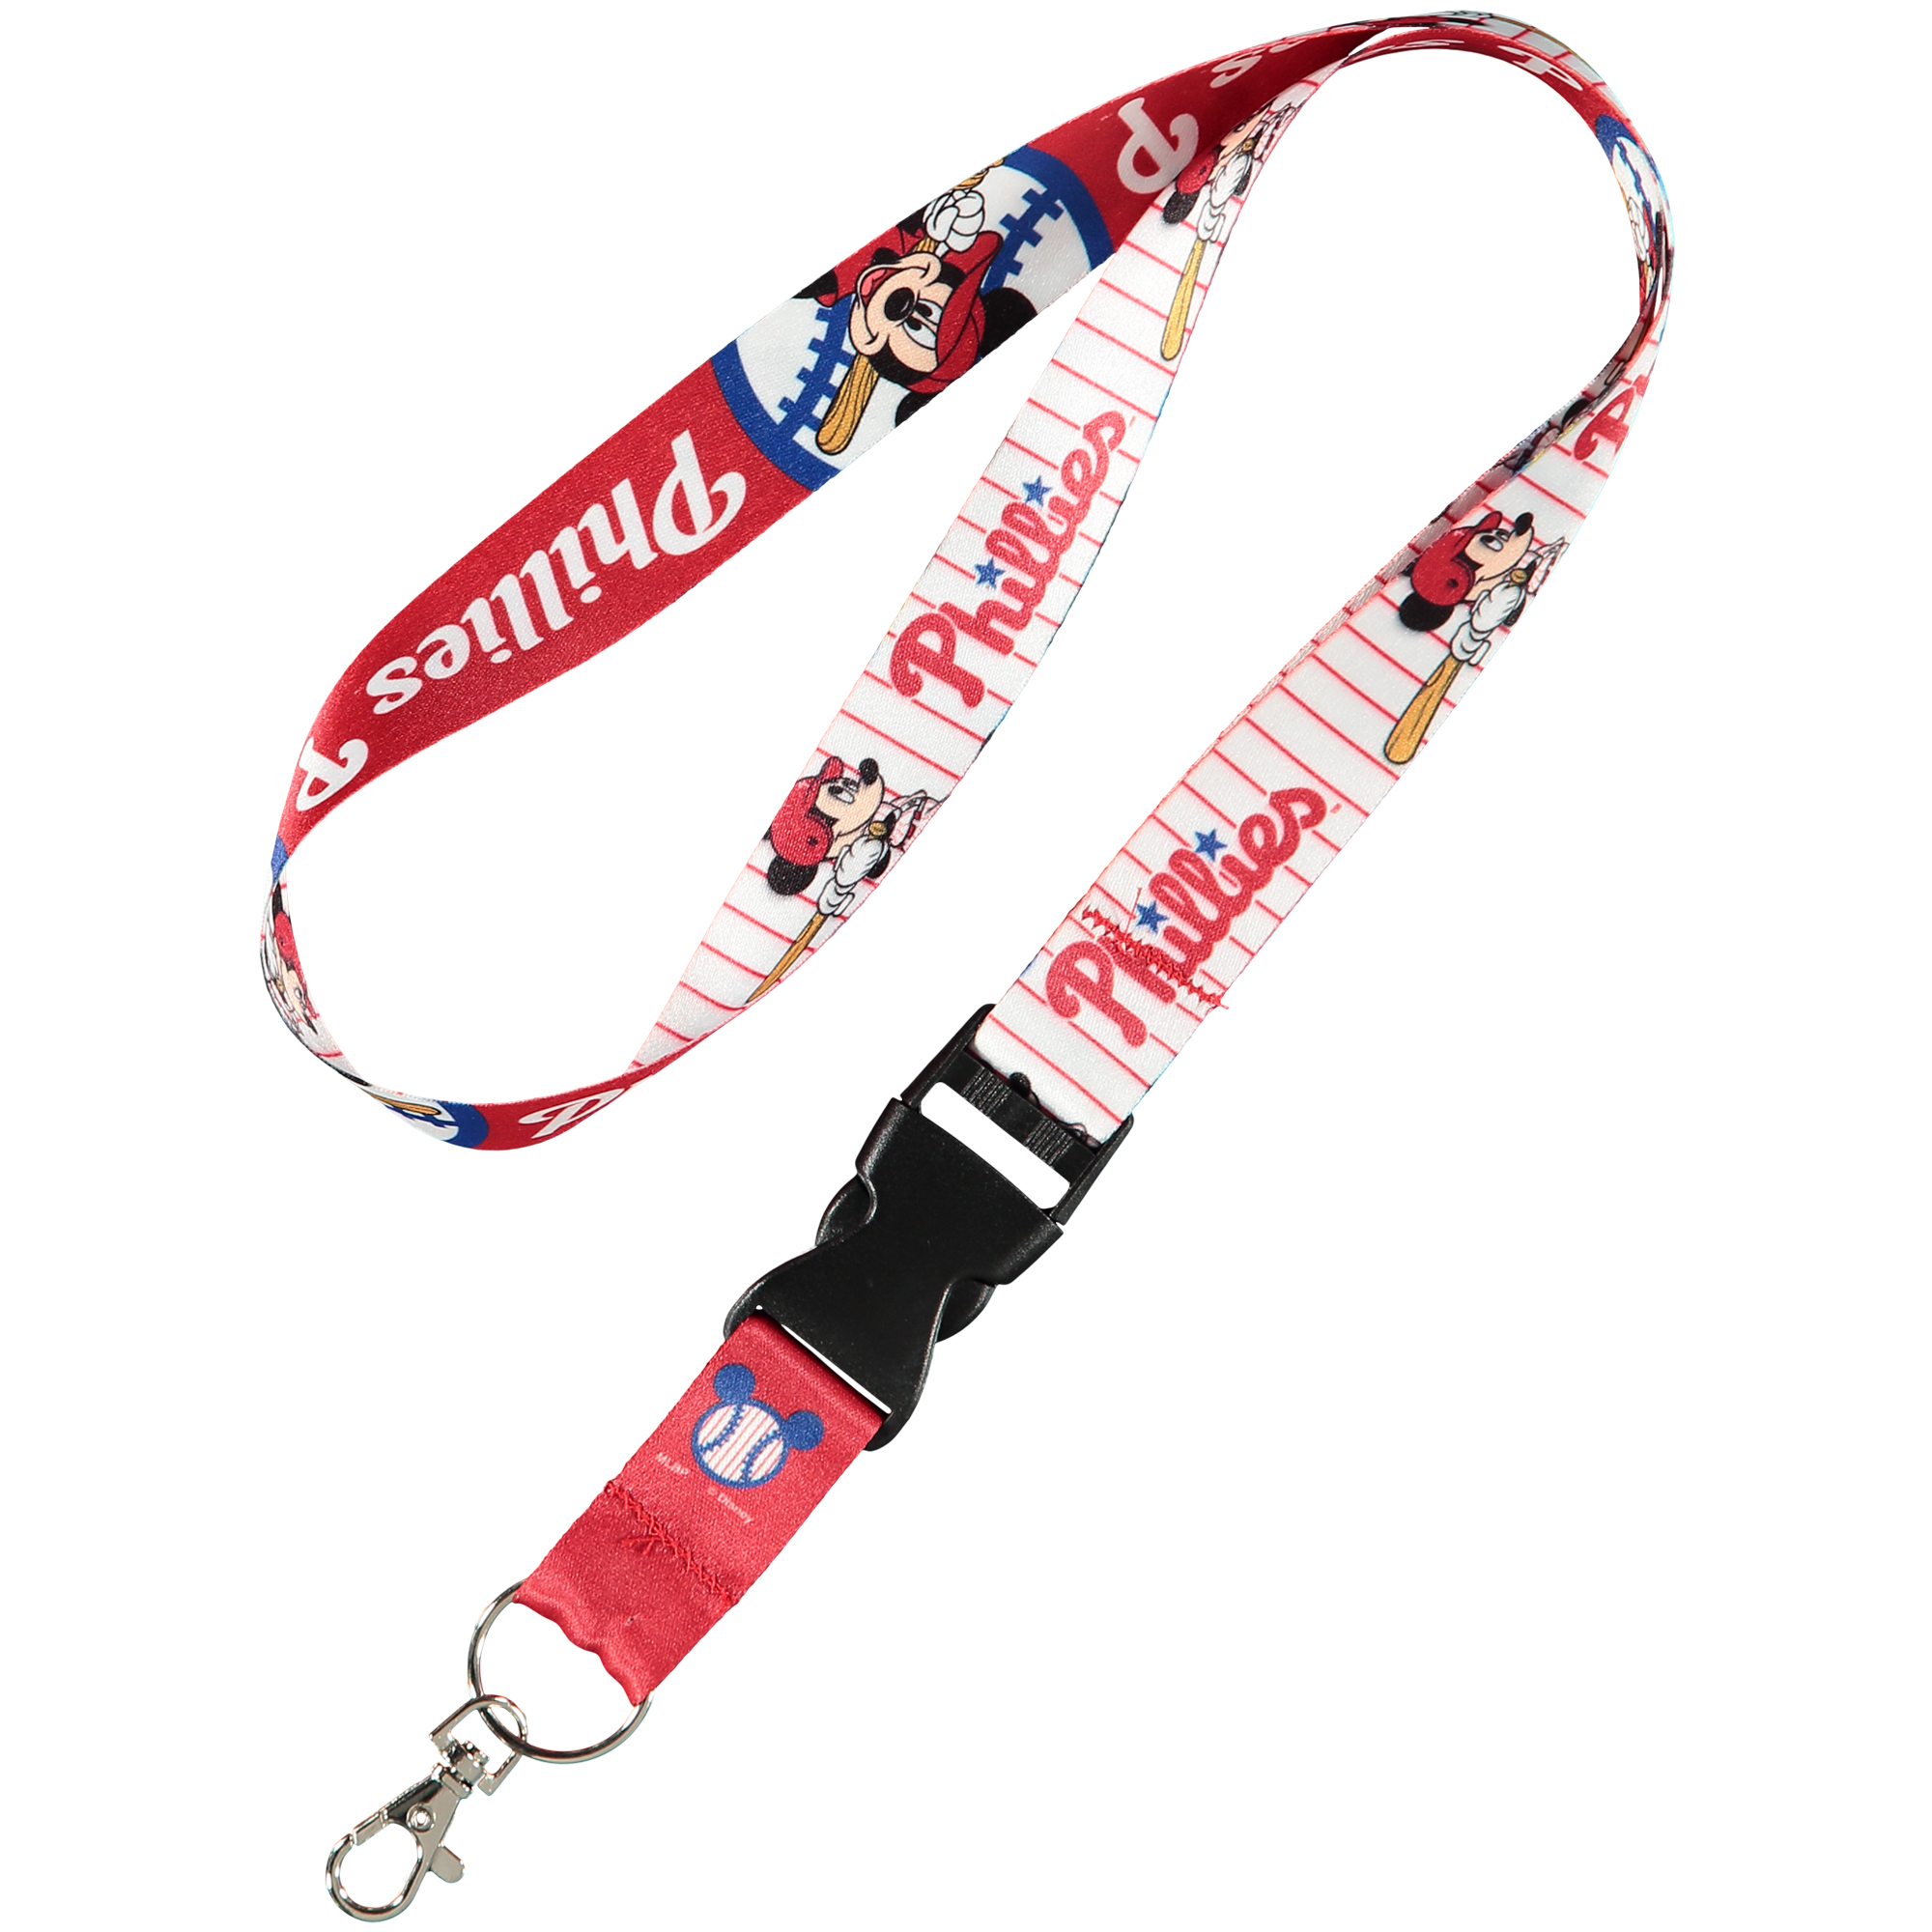 Philadelphia Phillies WinCraft One-Inch Disney Lanyard With Detachable Buckle - No Size